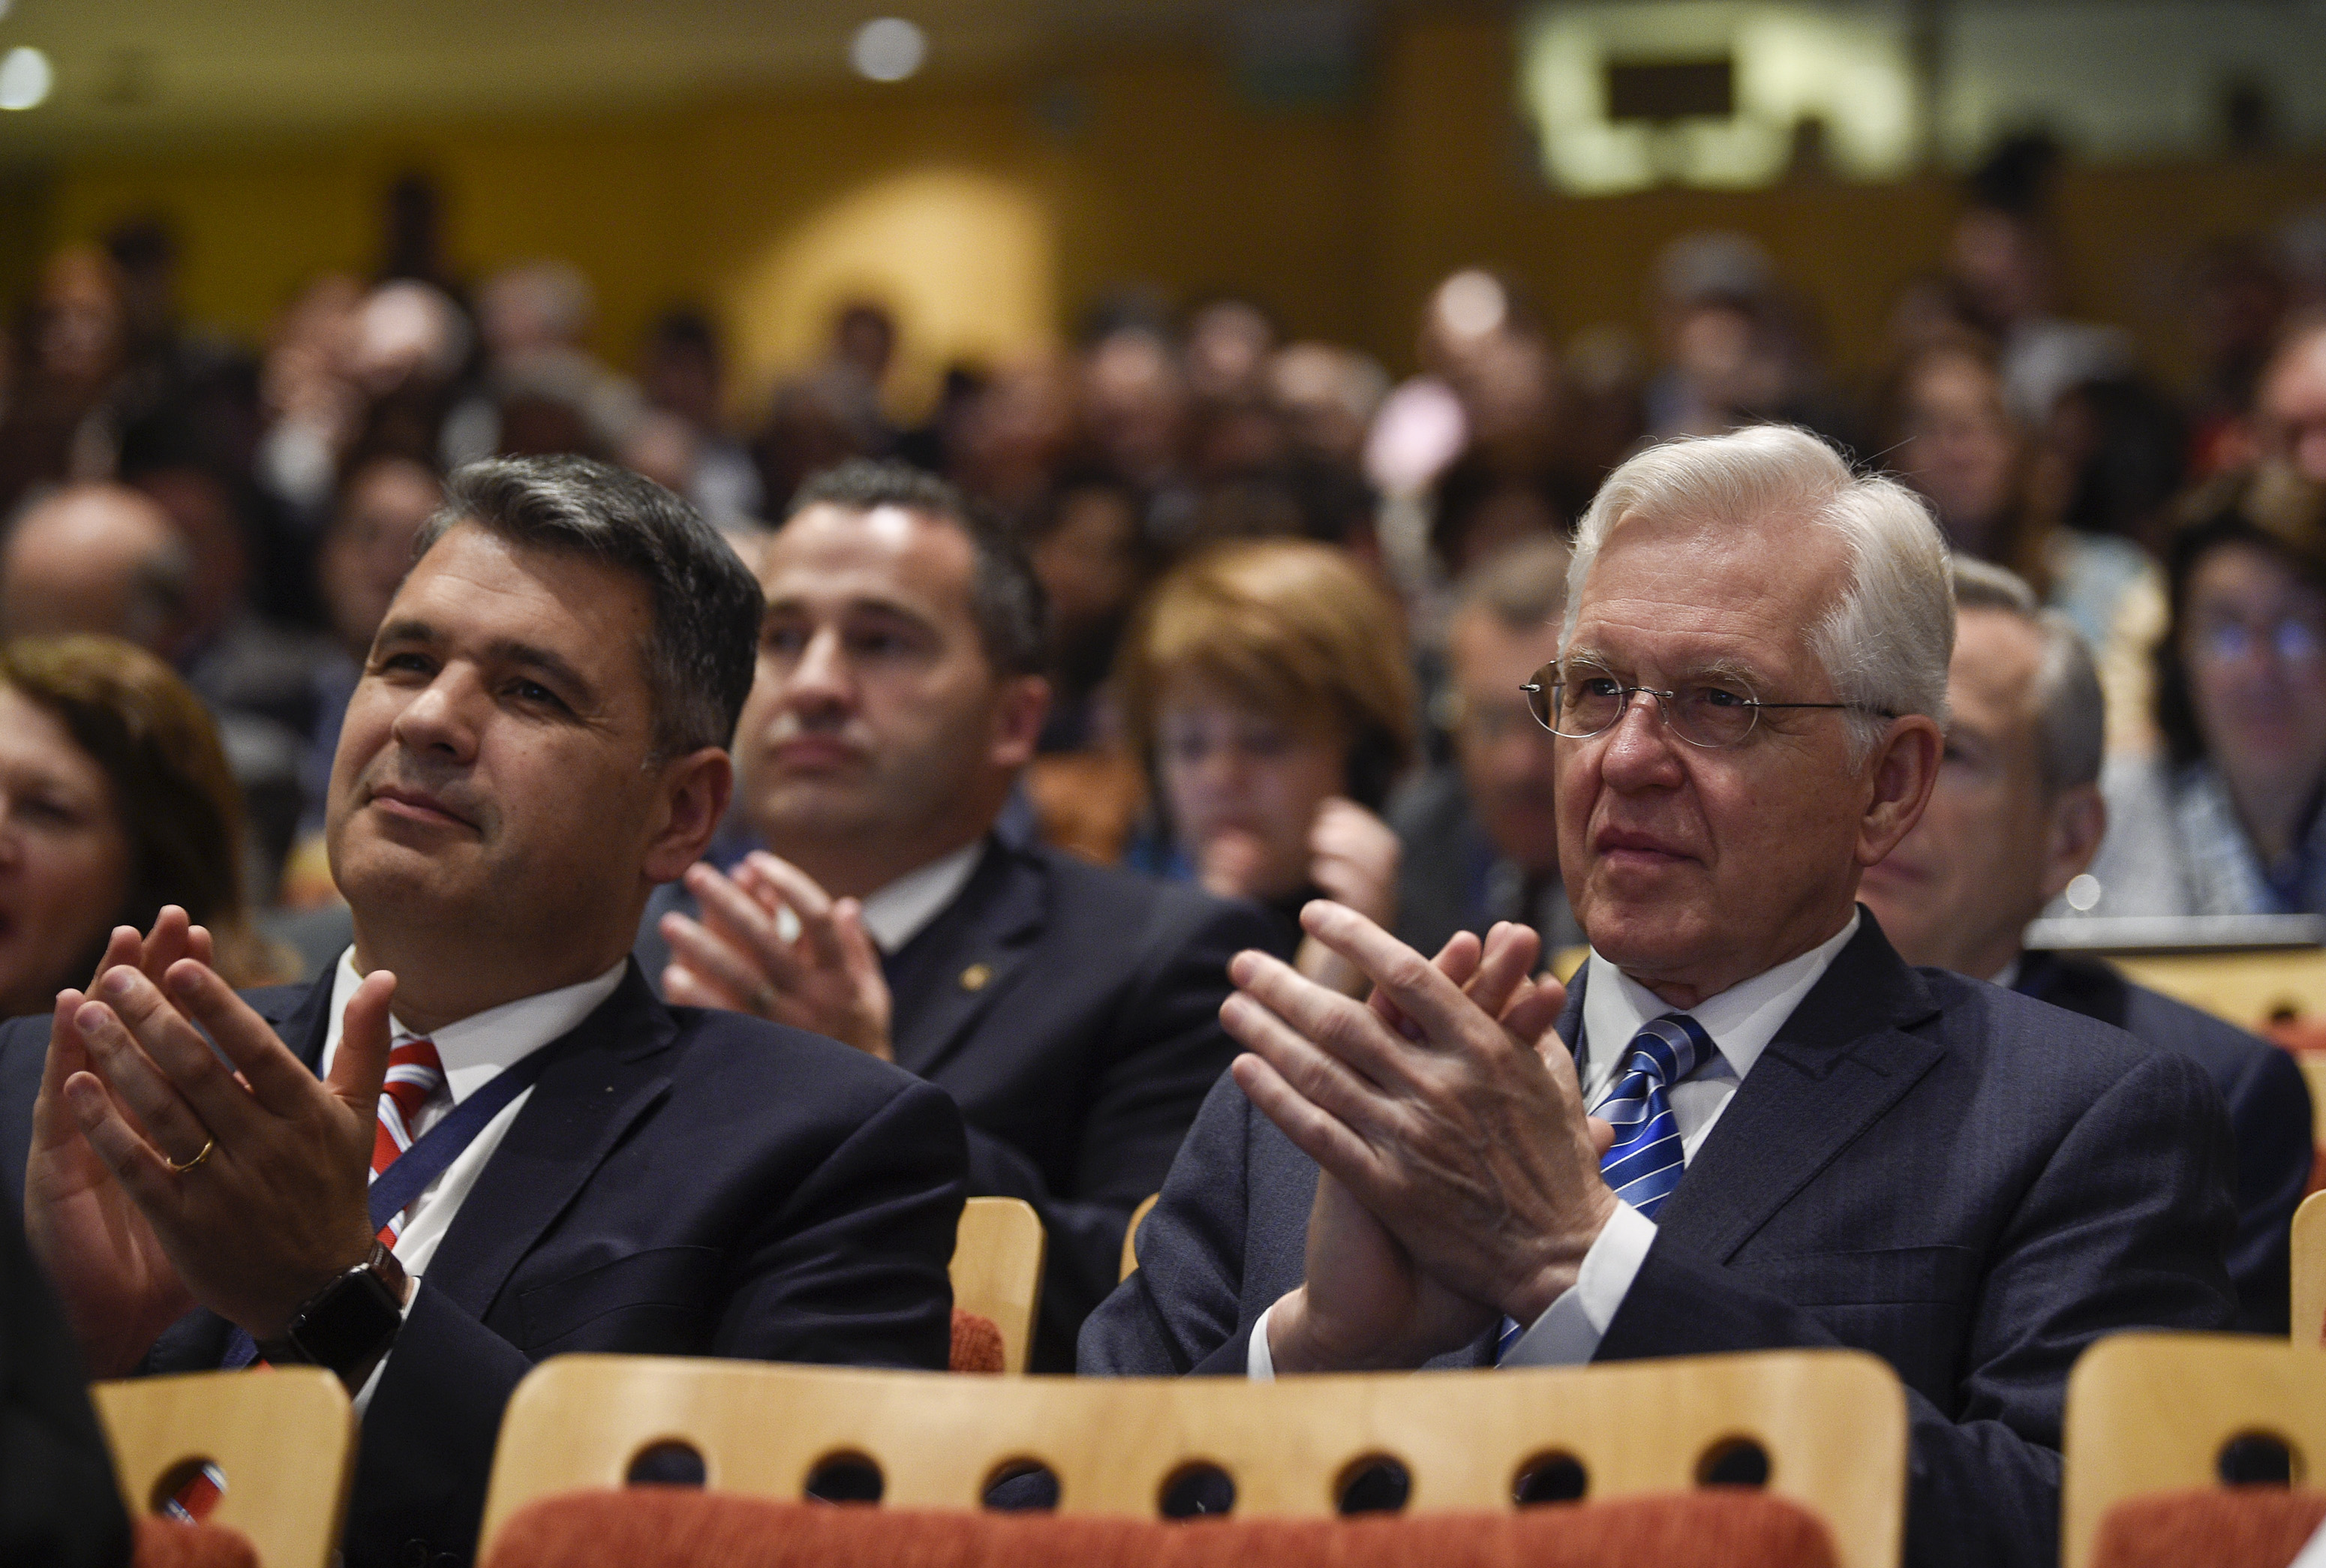 Elder D. Todd Christofferson of the Quorum of the Twelve Apostles, right, applauds during the G20 Interfaith Forum in Buenos Aires, Argentina, on Wednesday, Sept. 26, 2018.